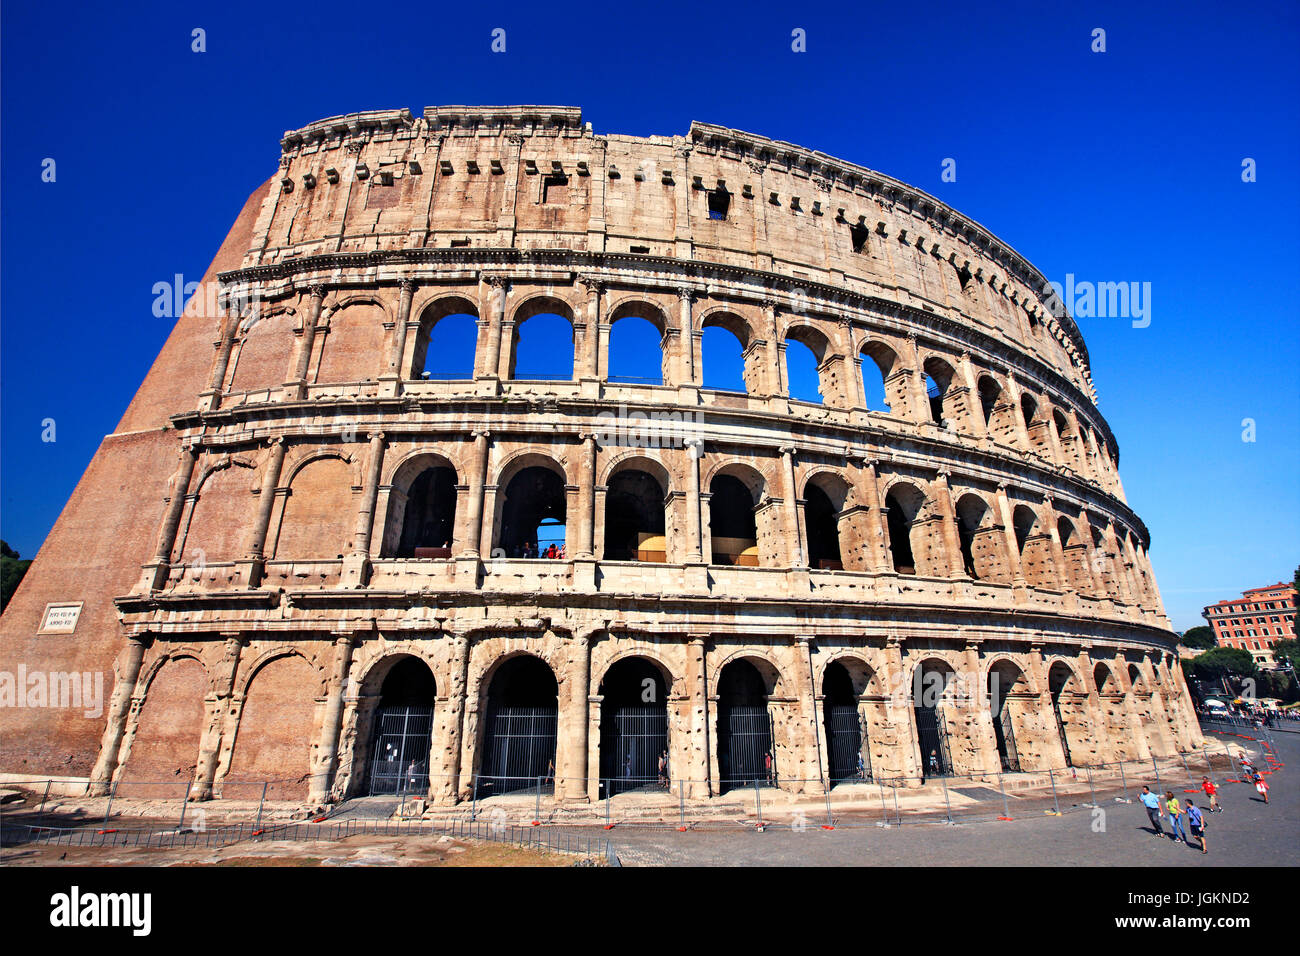 The Colosseum ('Colosseo'), also known as the 'Flavian Amphitheatre'), Rome, Italy - Stock Image